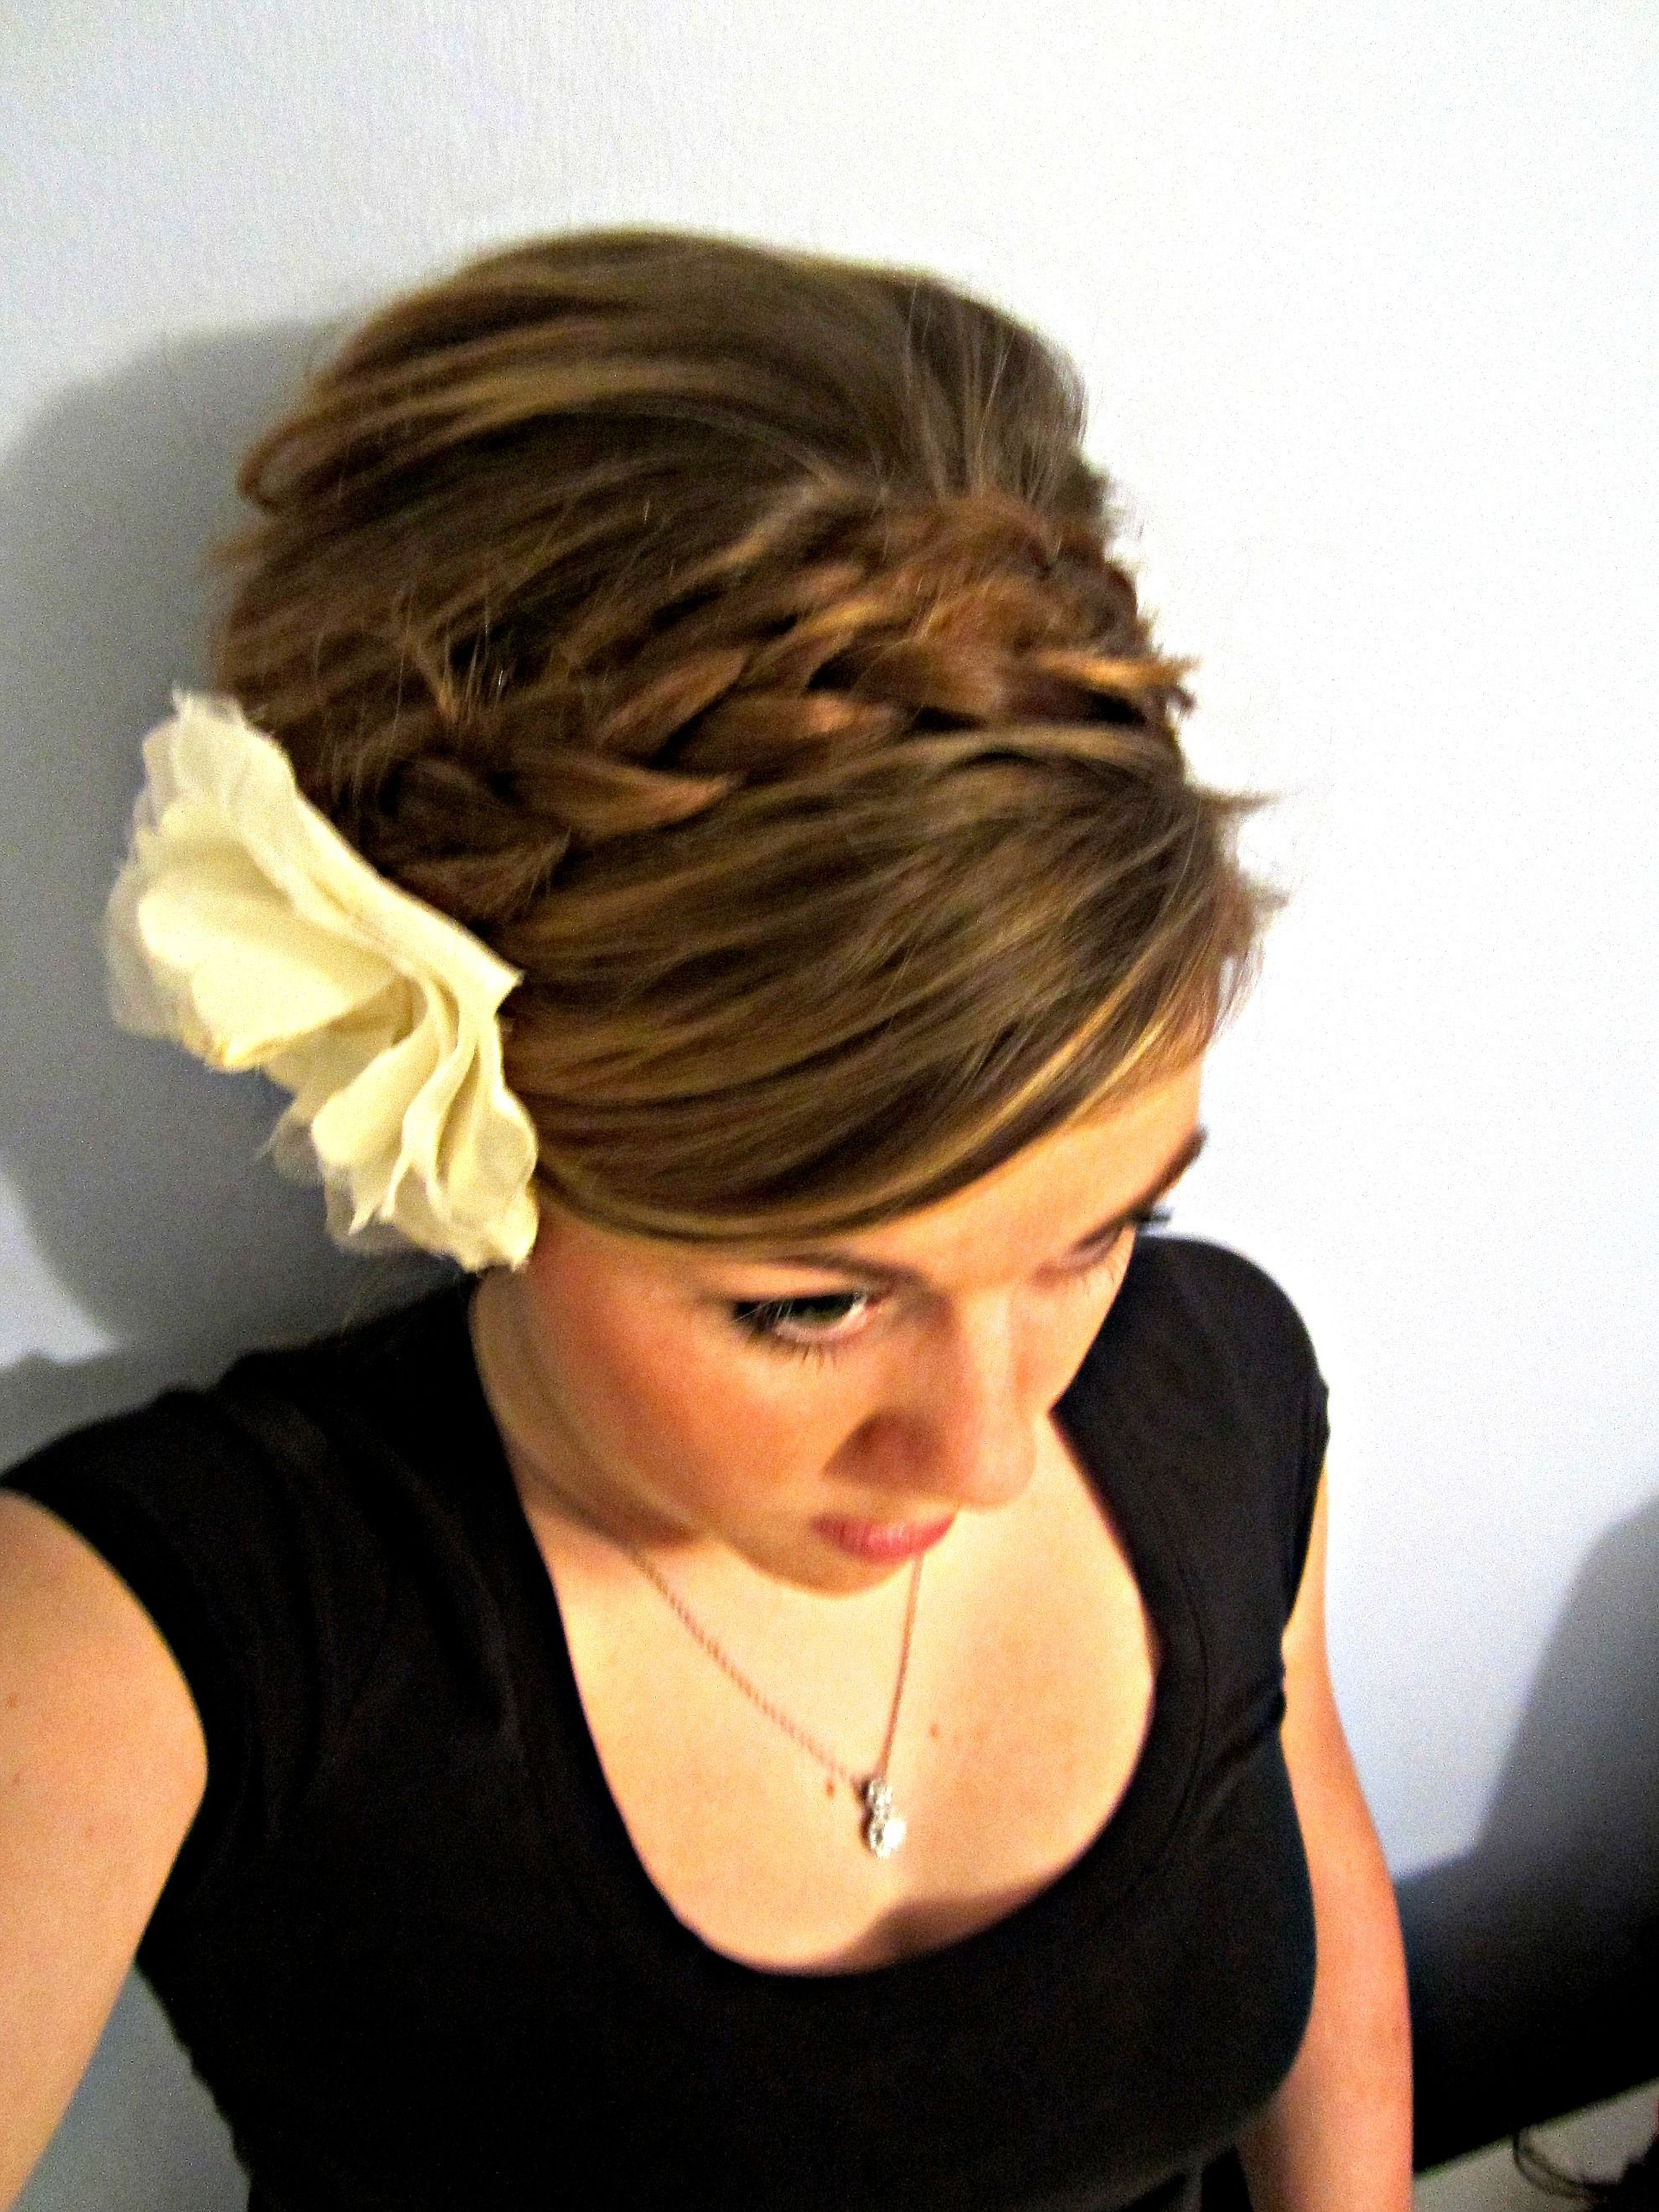 This would be cute bridesmaid hair i donut know if i could do it